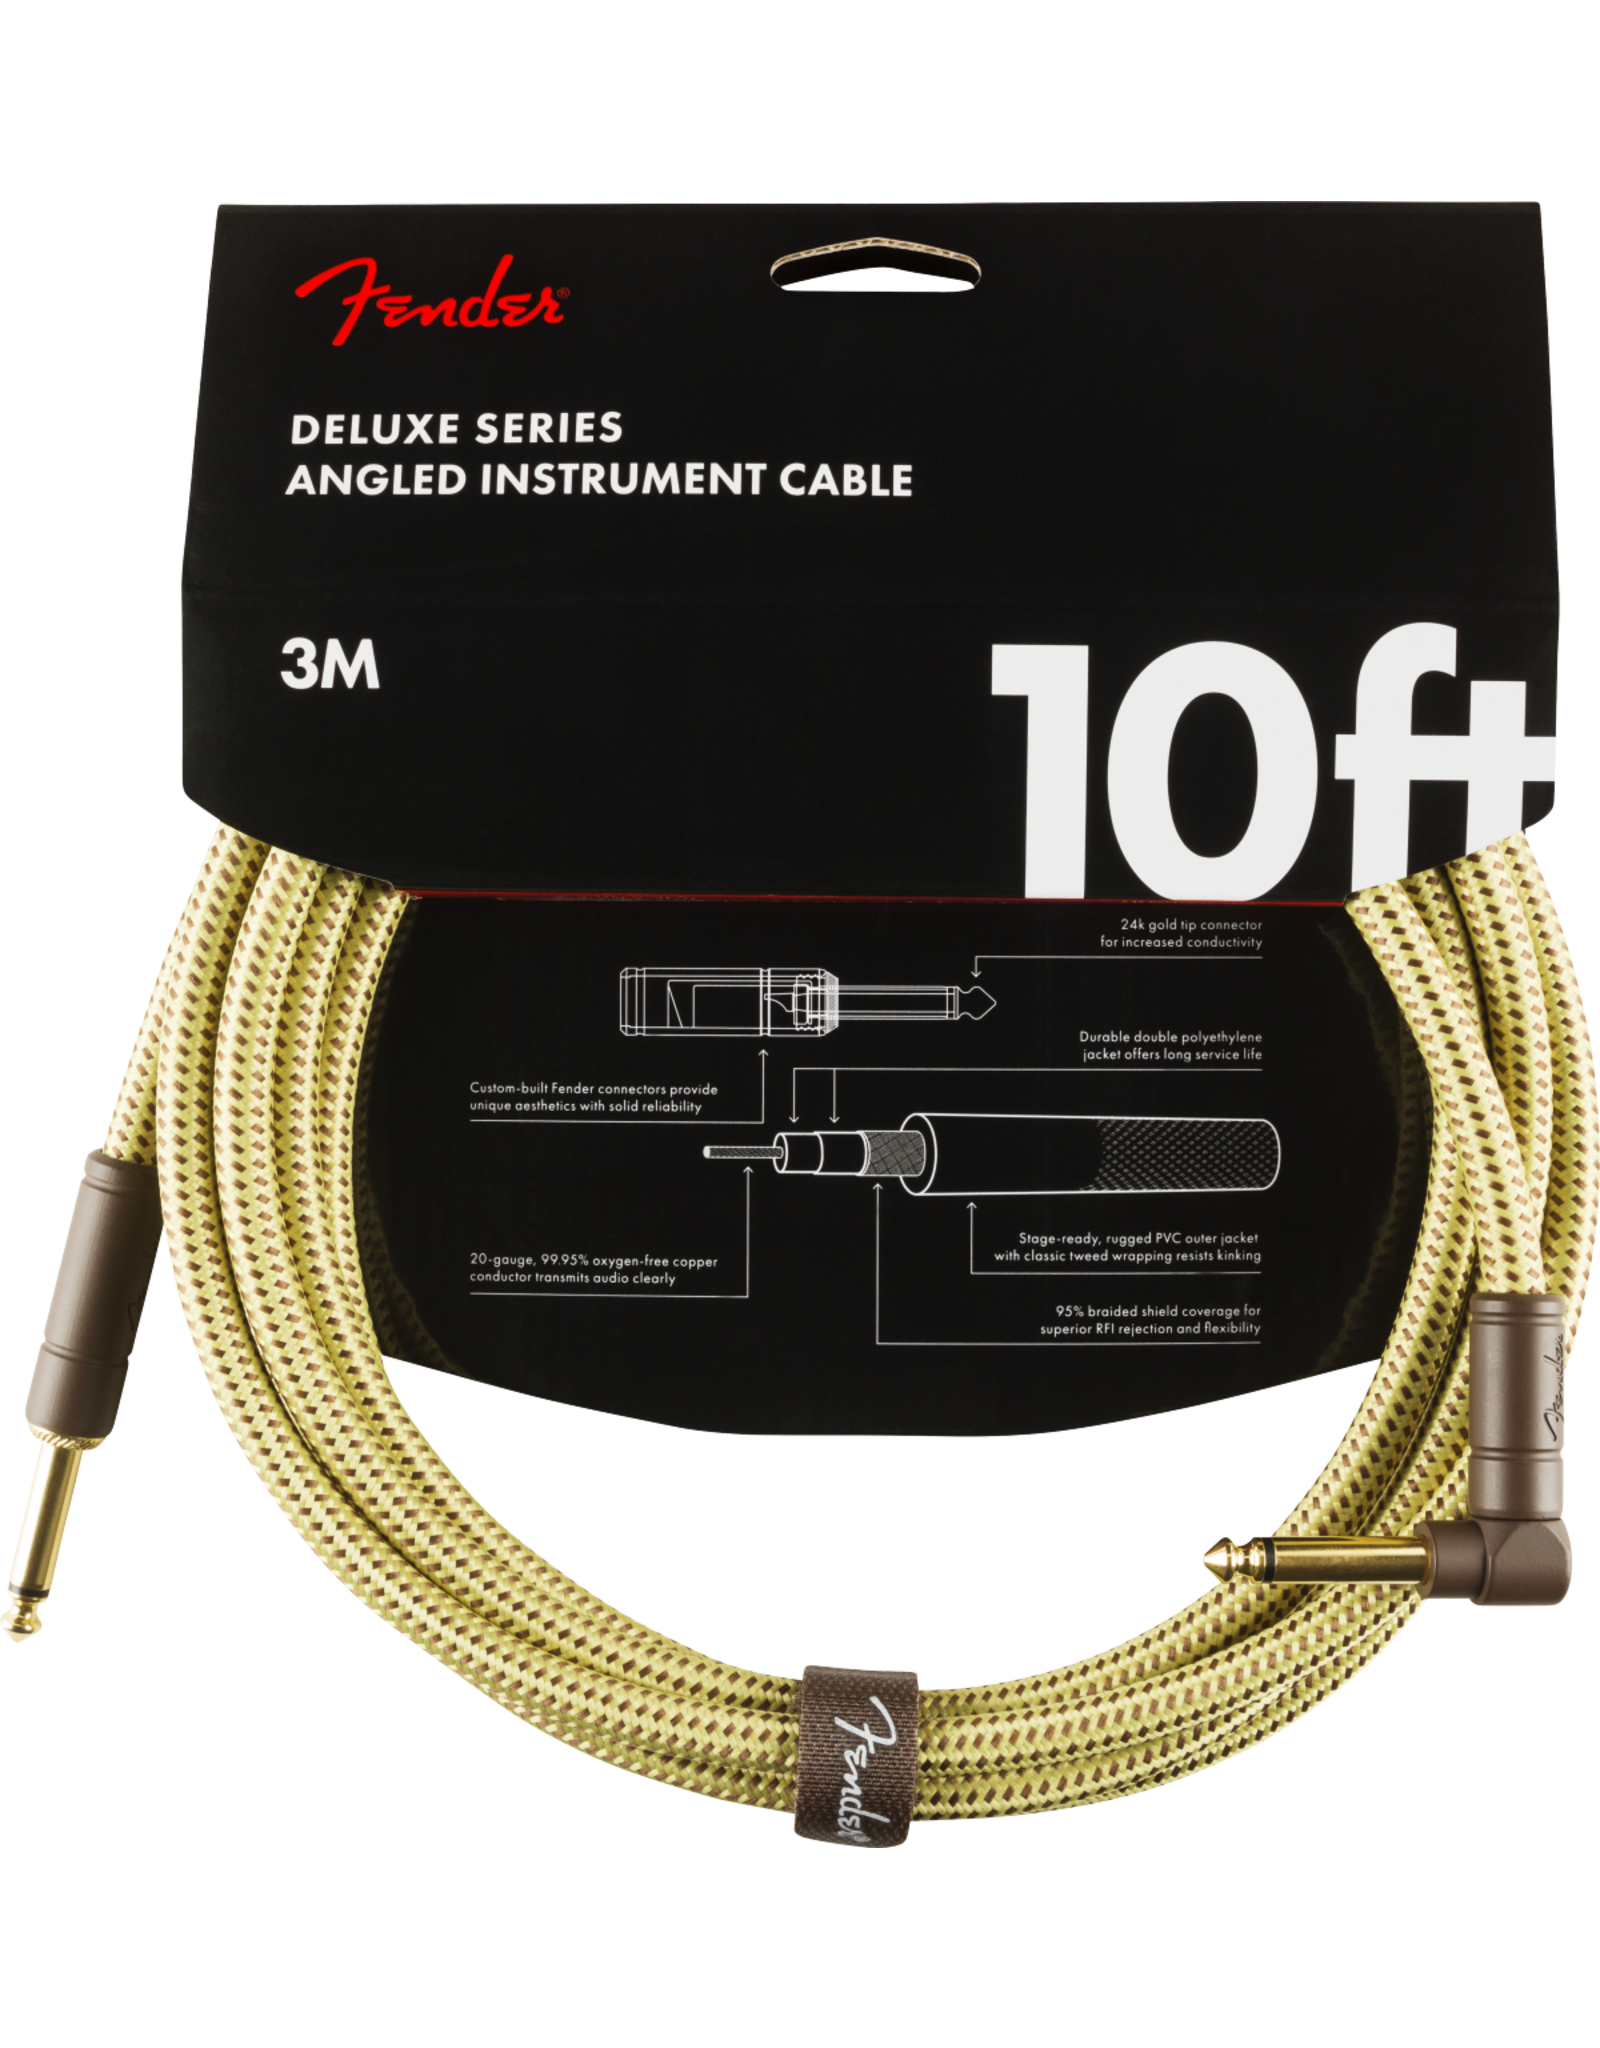 Fender Fender Deluxe 10' inst cable tweed angled